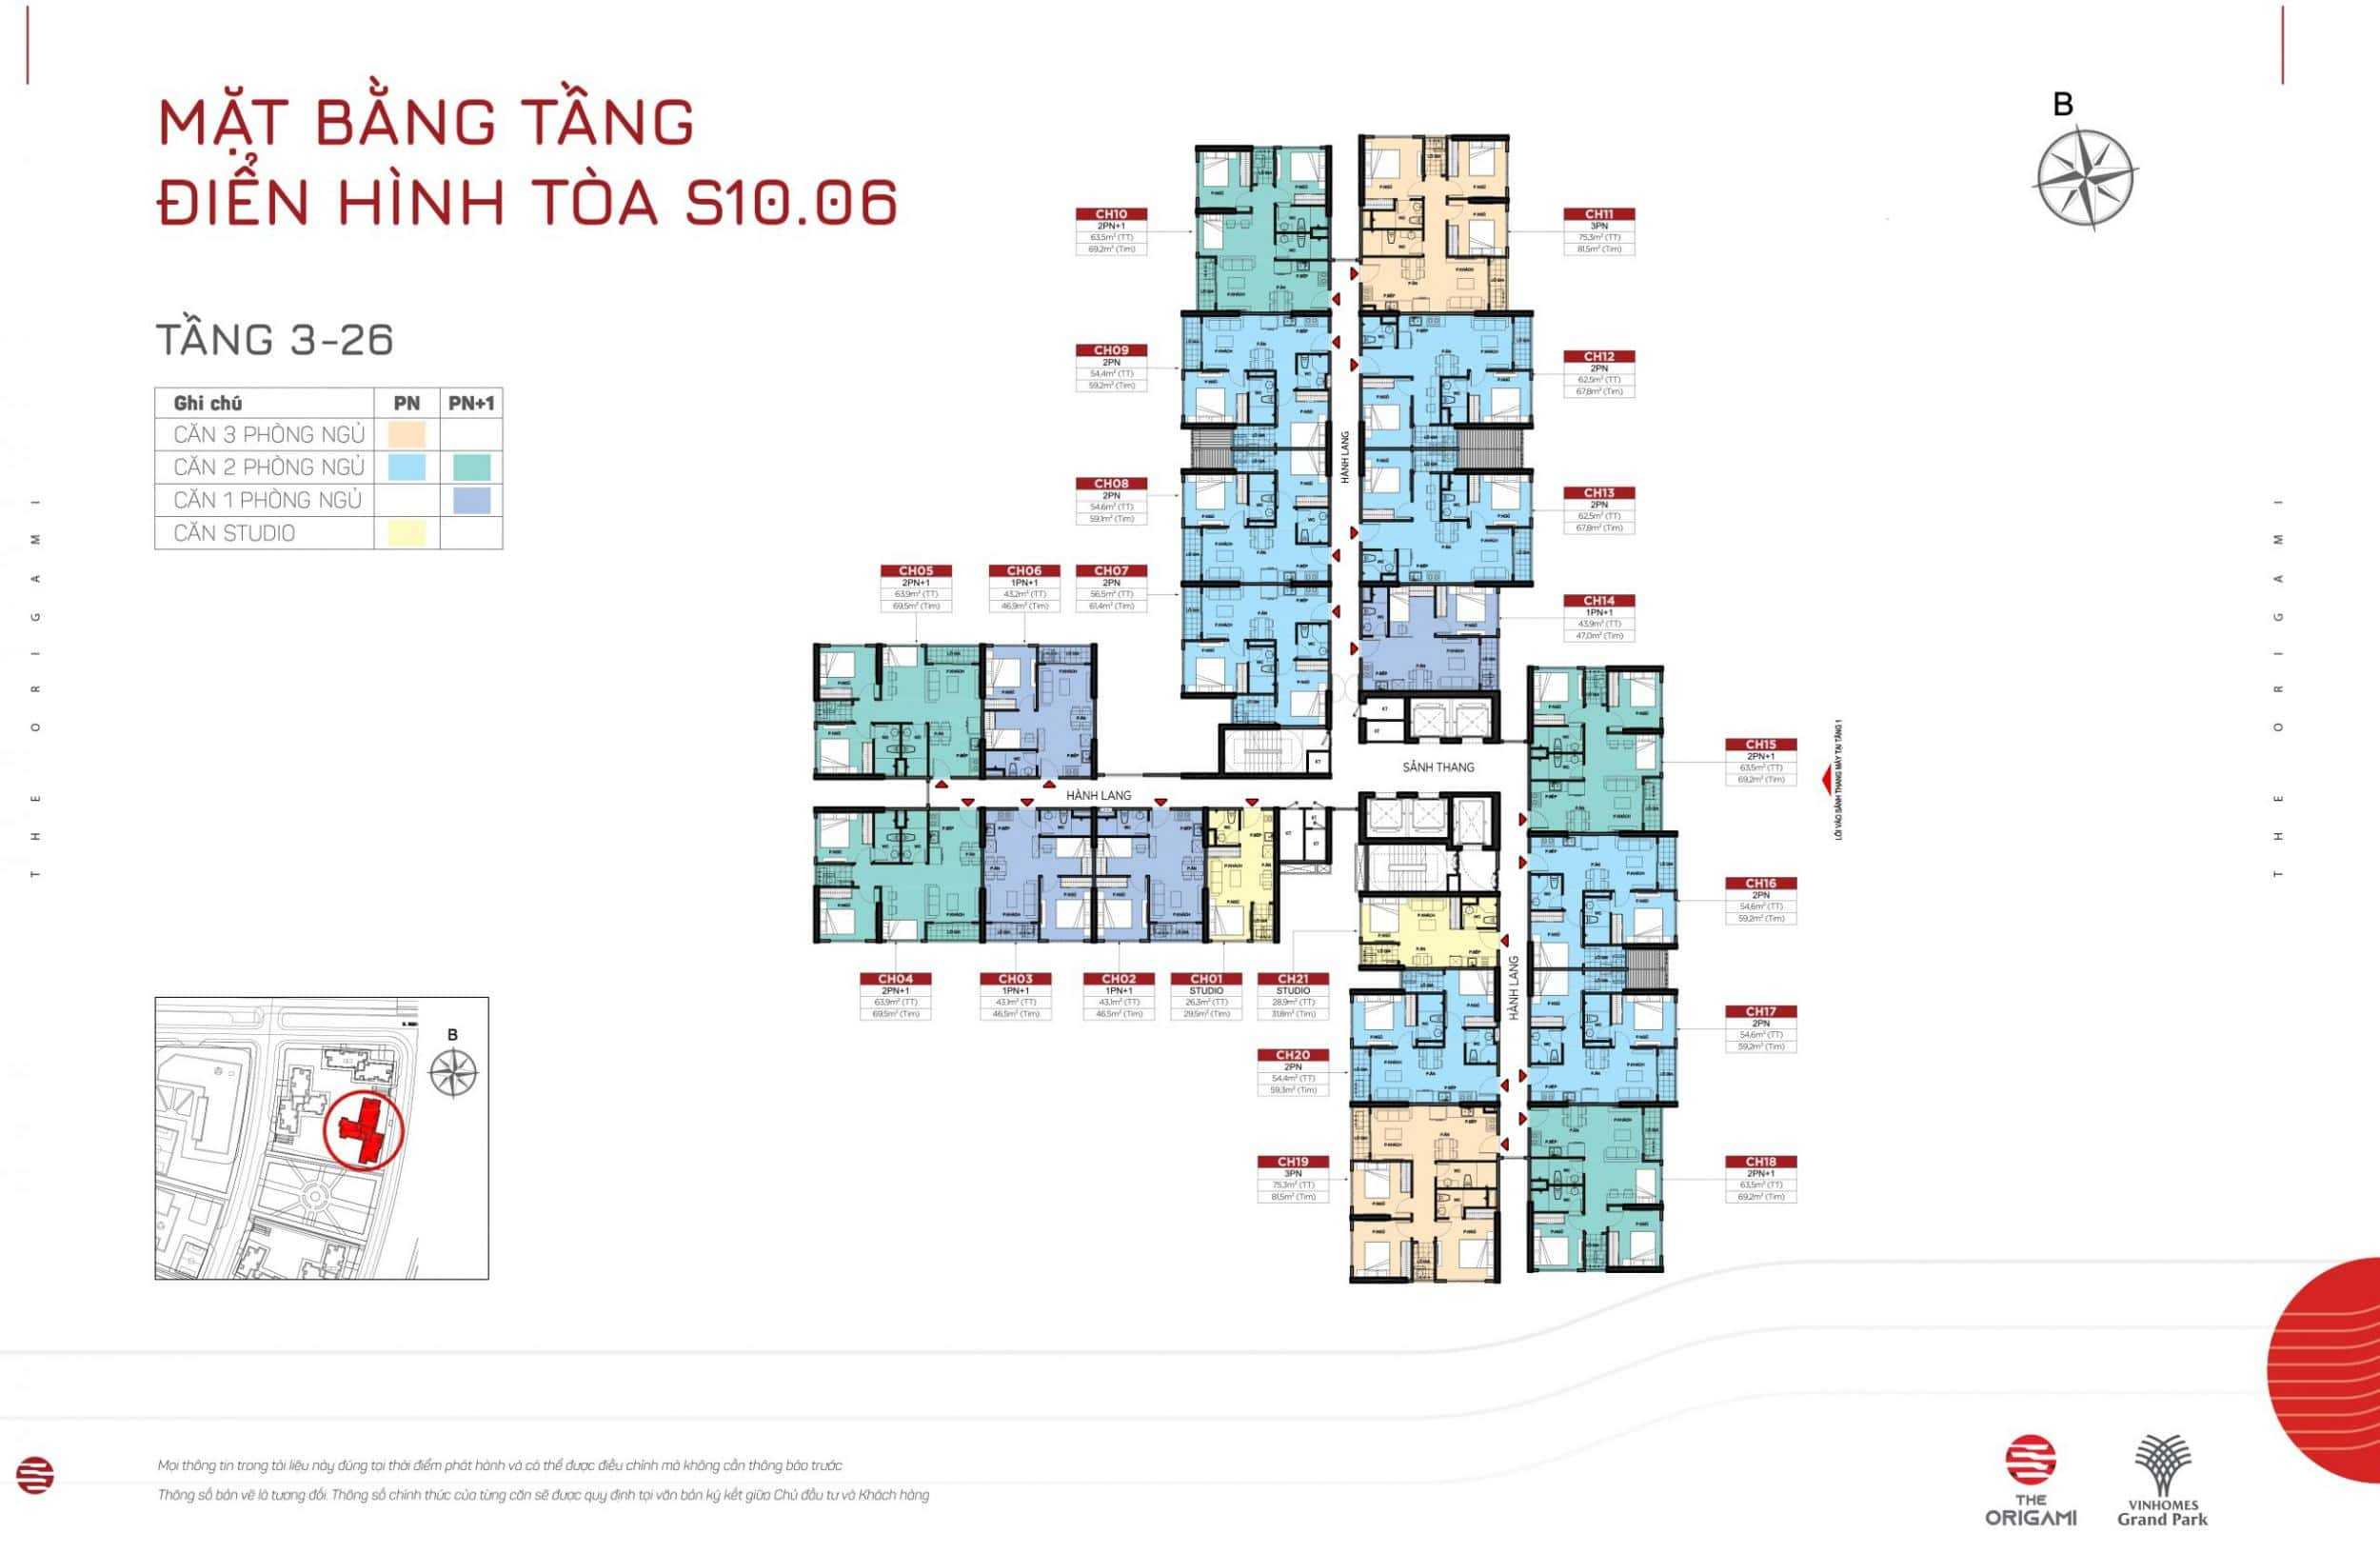 Mặt bằng S10.06 The Origami Vinhomes Grand Park - tầng 3-26